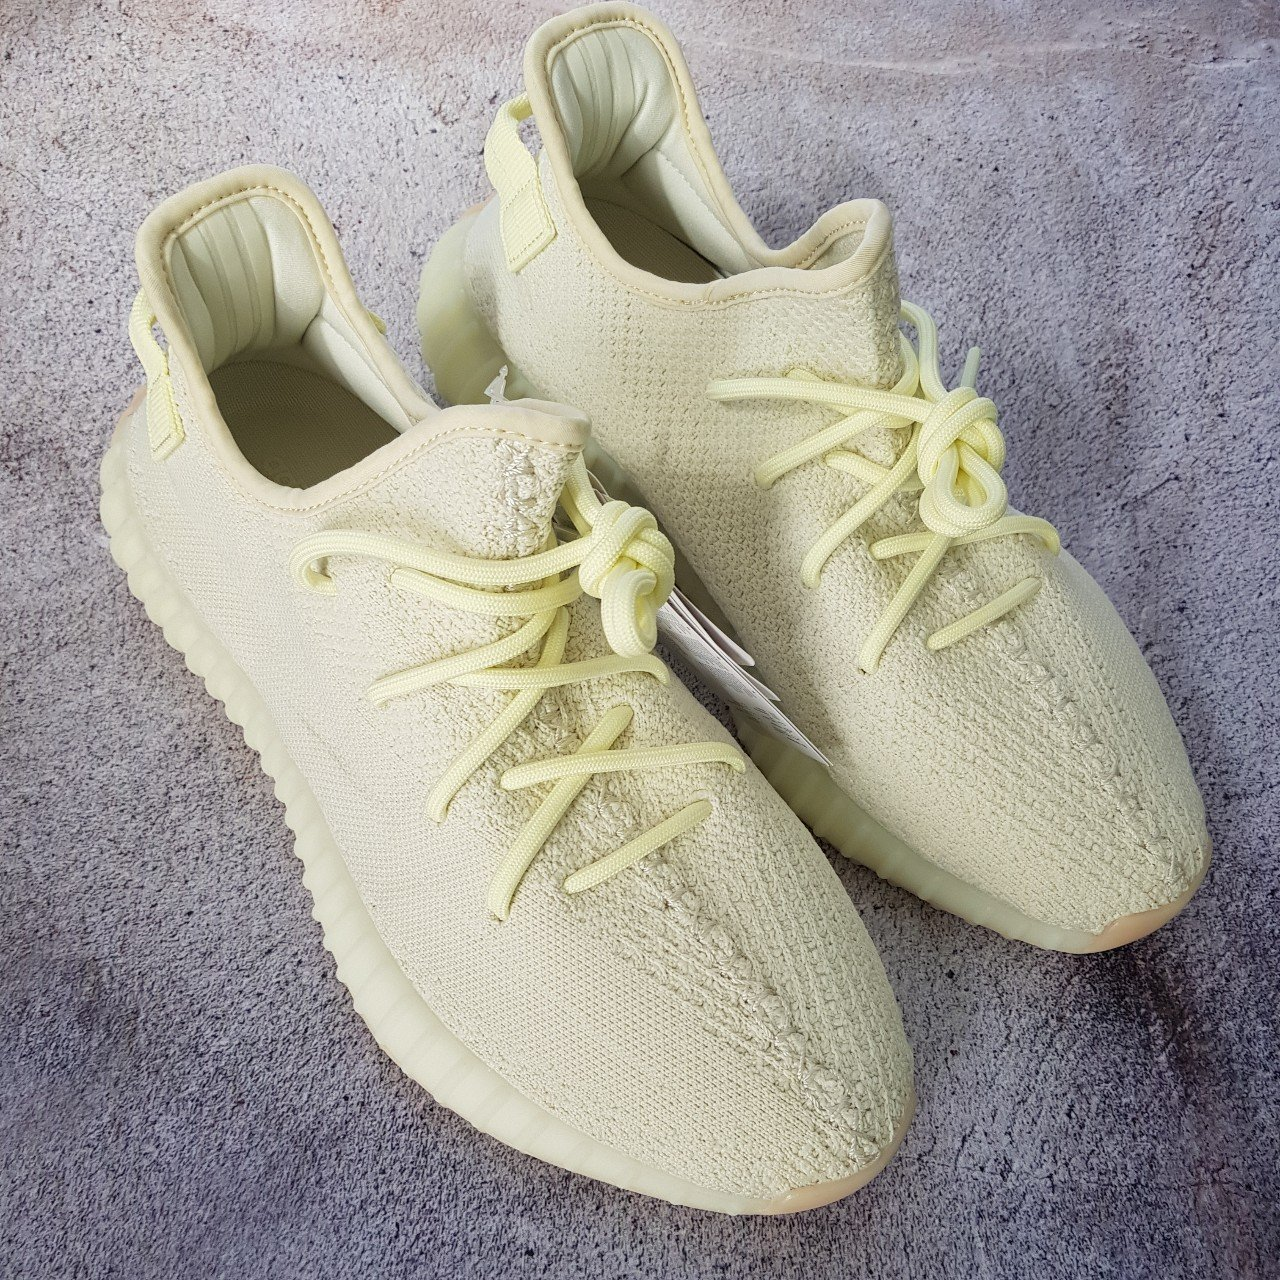 Yeezy boost 350 V2 Butter UK Size 9.5 Adidas yeezy 100% and - Depop c6832bef75